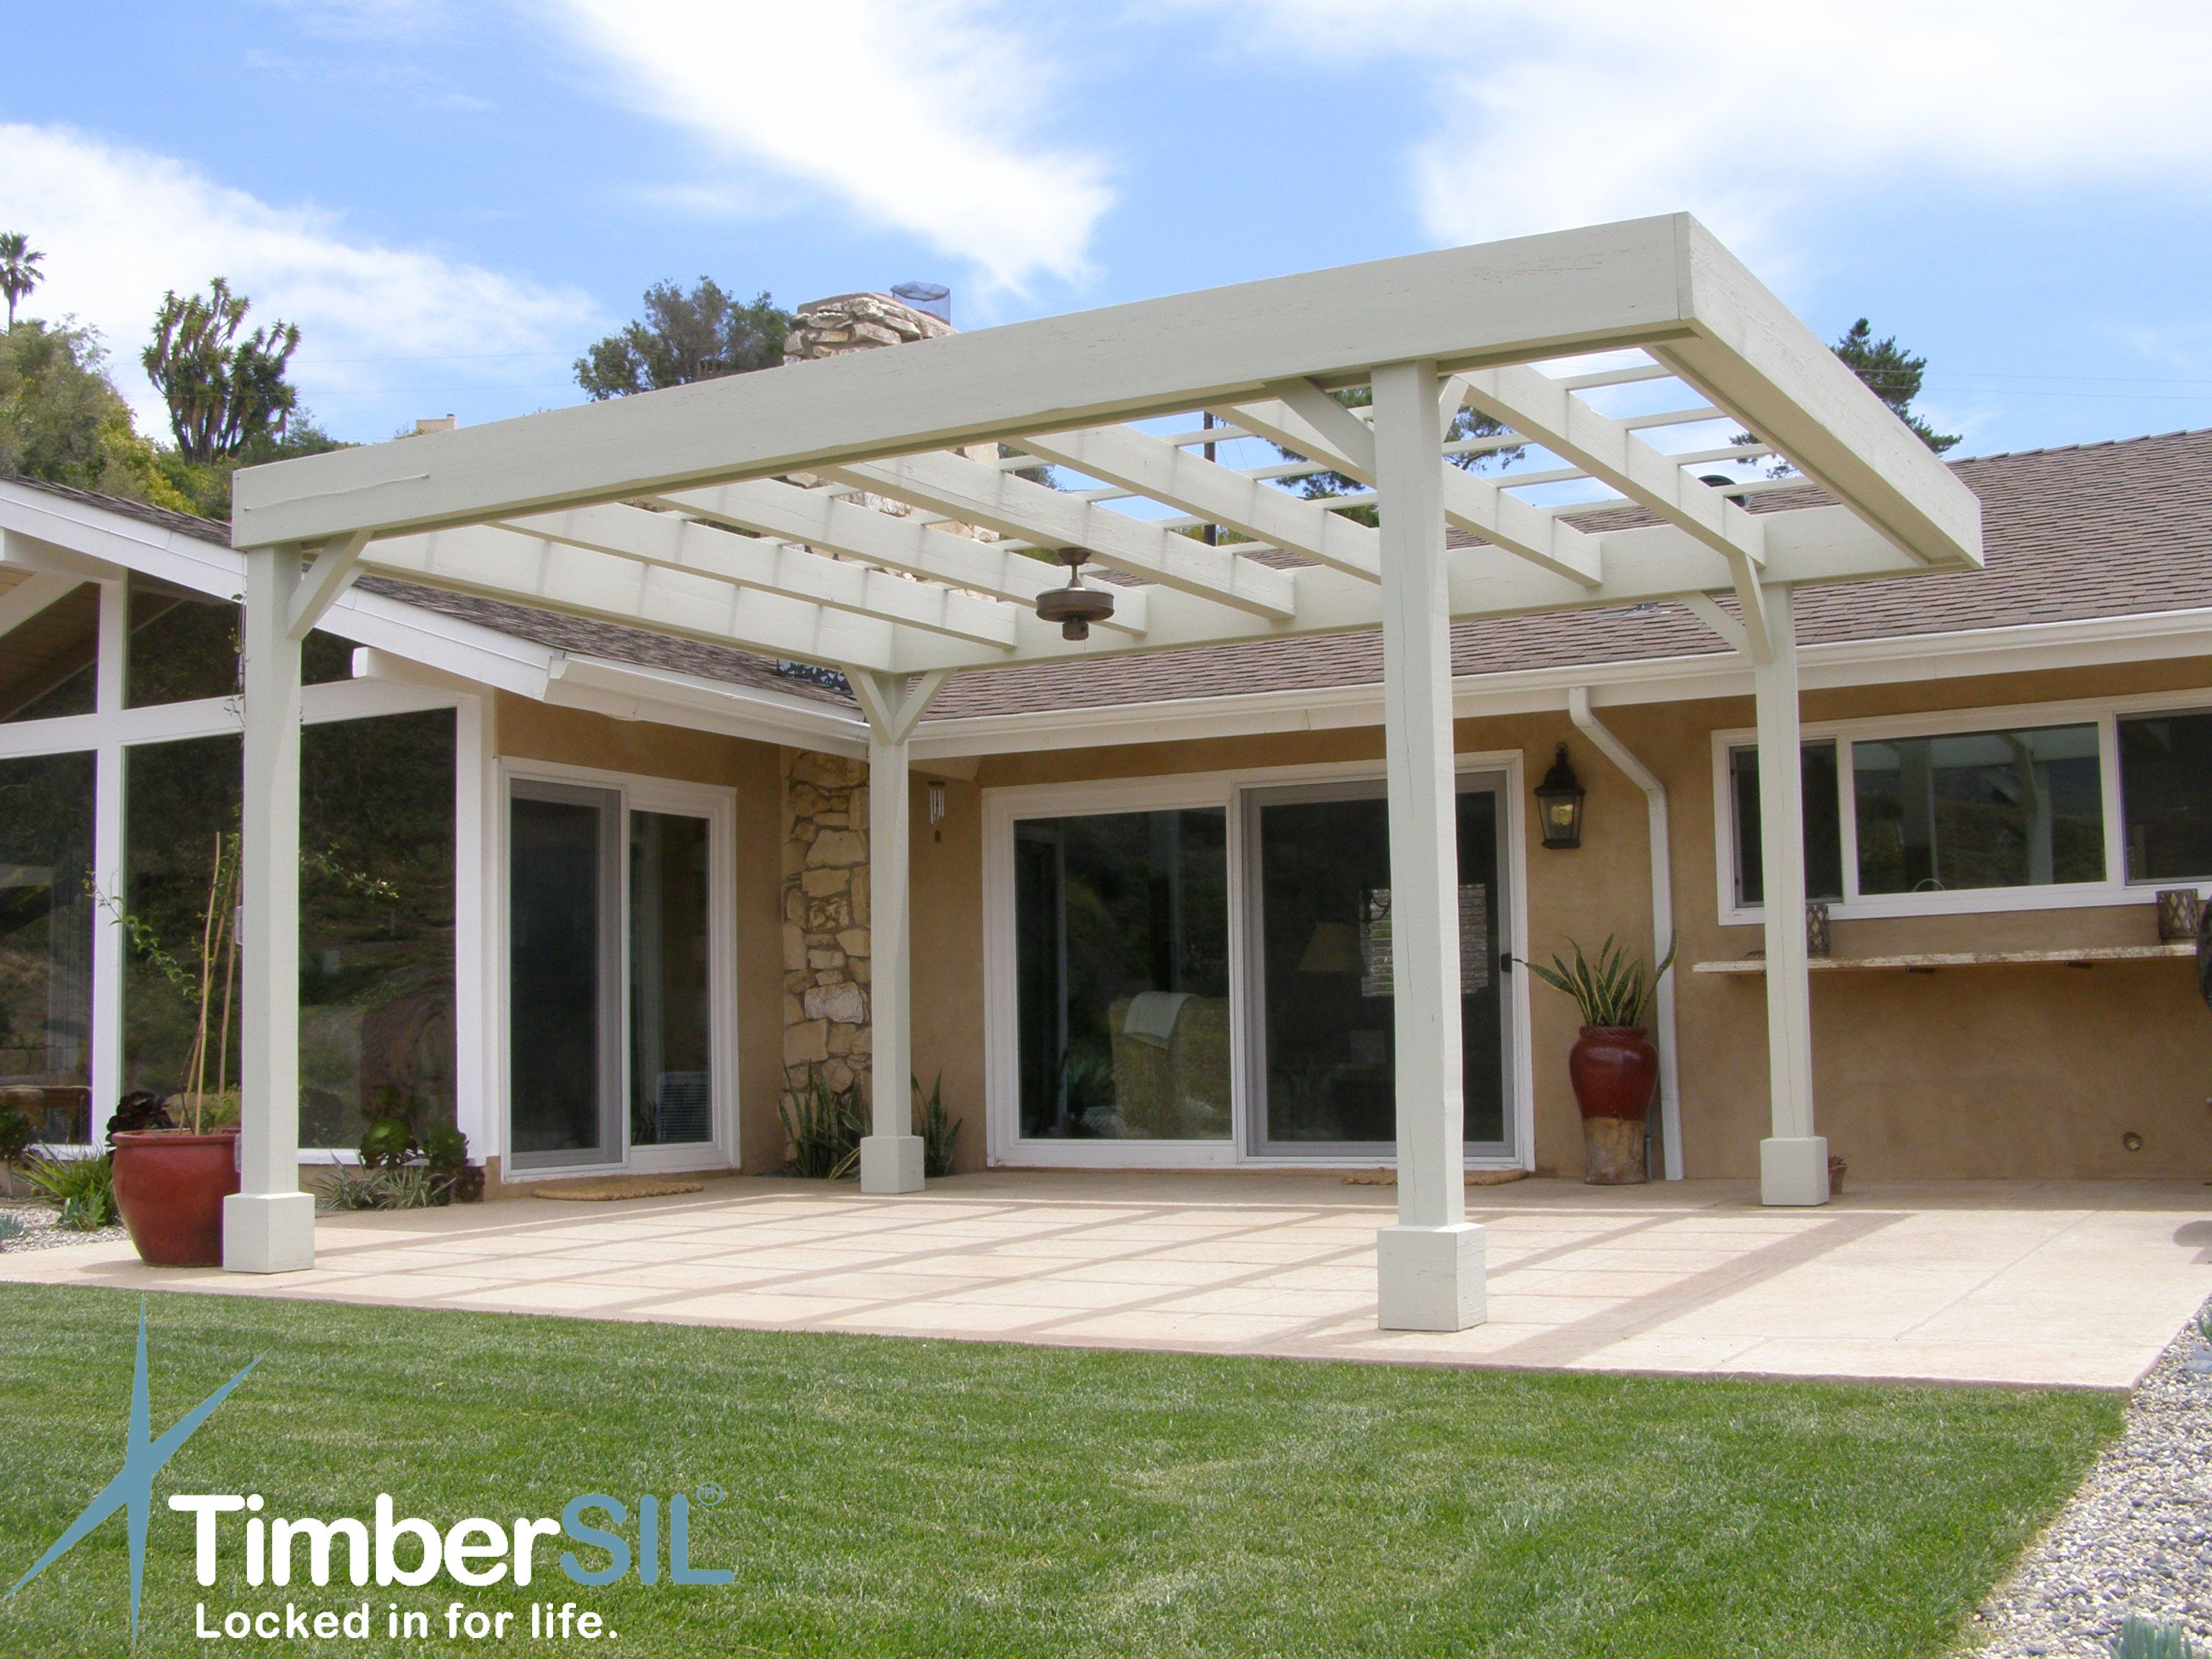 TimberSIL® Wood Pergola   Class A Fire Rated